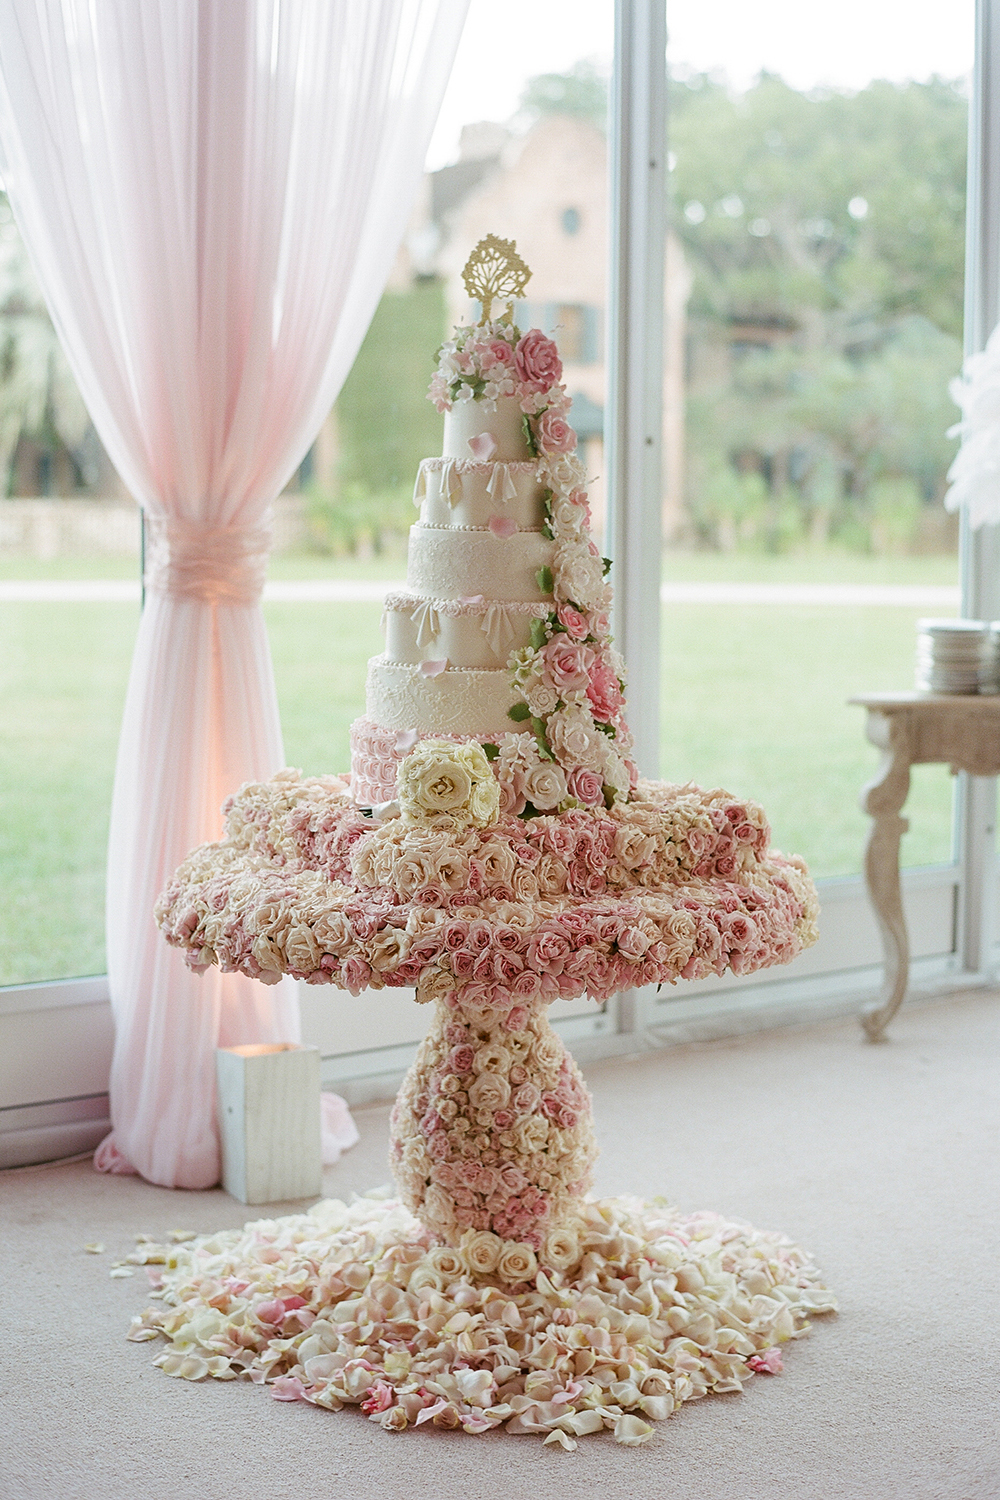 Tara Lipinski's and Todd Kapostasy's seven-tier wedding cake, enrobed with pink and white rose petals; Sylvie Gil Photography